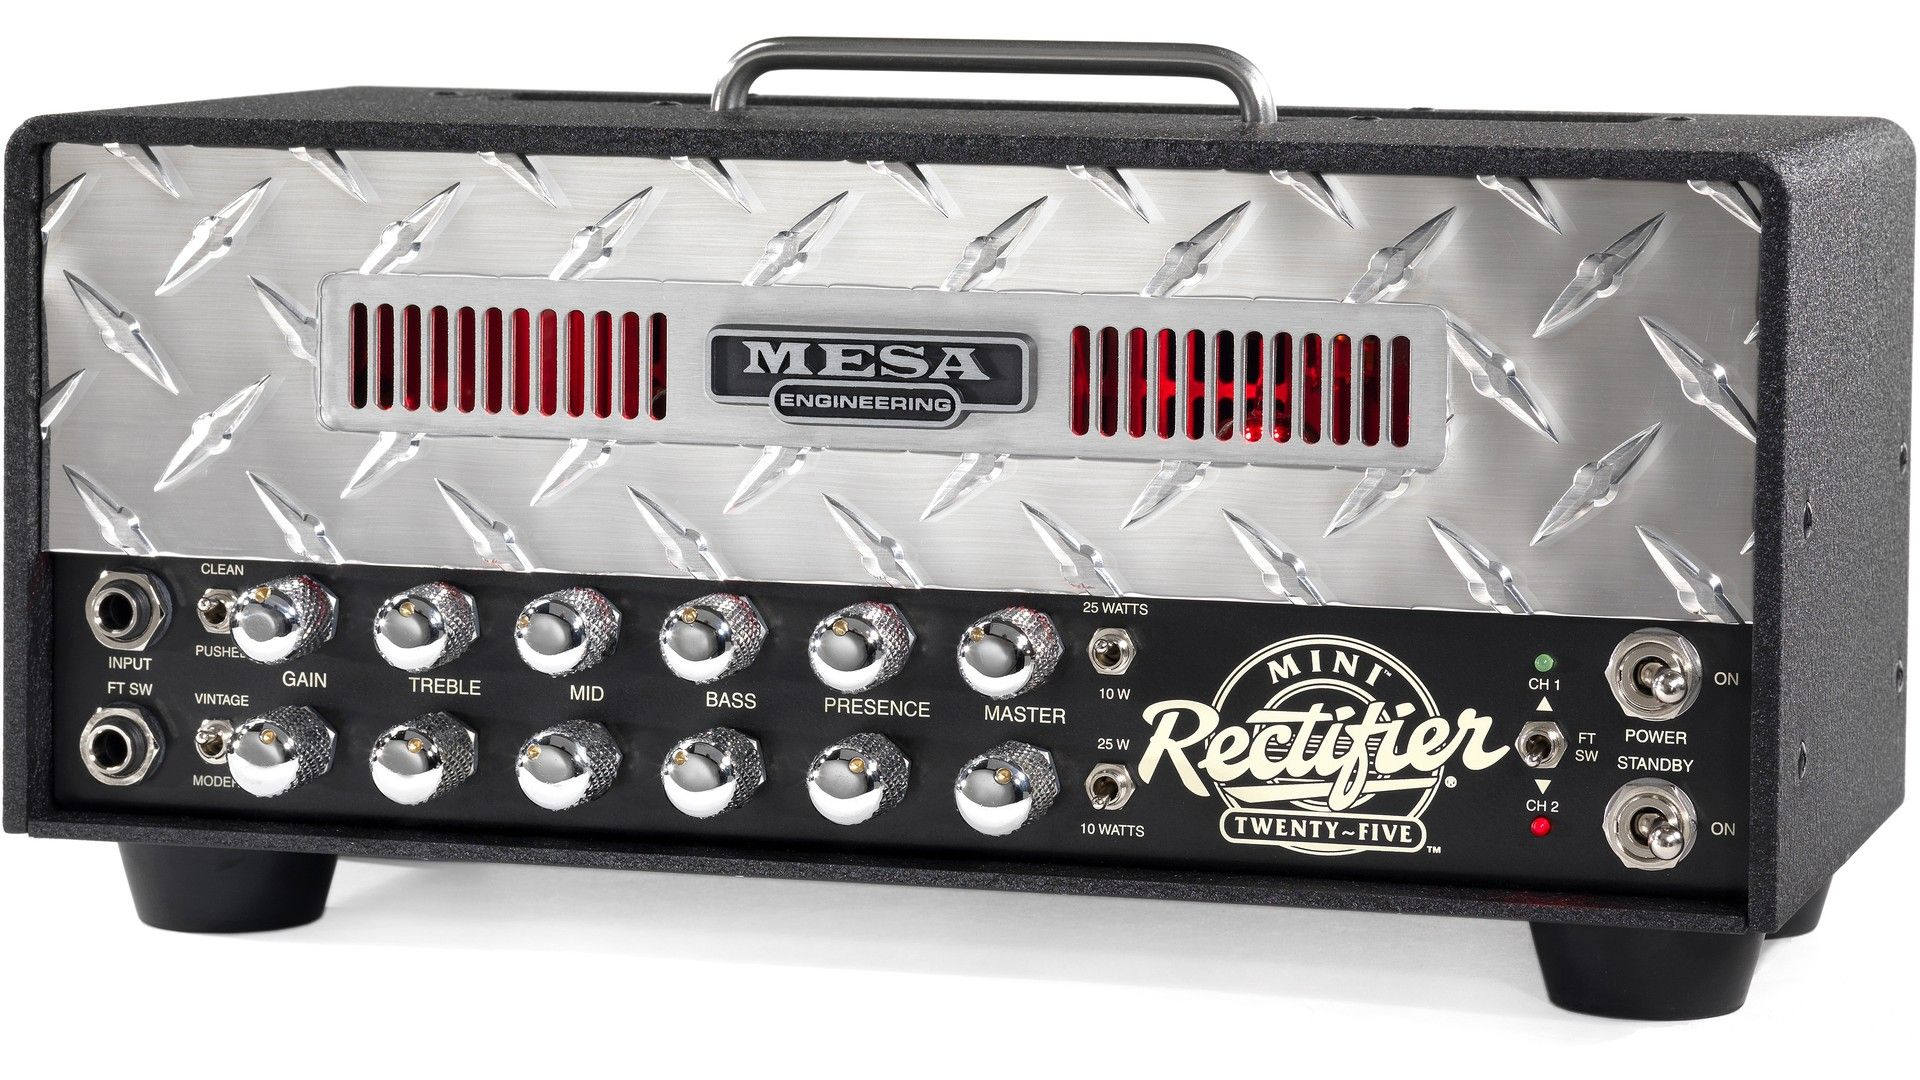 MESA/Boogie Mini-Rectifier Twenty-Five Testbericht: Brachiale Metal-Maschine für's Wohnzimmer - http://www.delamar.de/test/mesa-boogie-mini-rectifier-twenty-five-testbericht/?utm_source=Pinterest&utm_medium=post-id%2B35421&utm_campaign=autopost